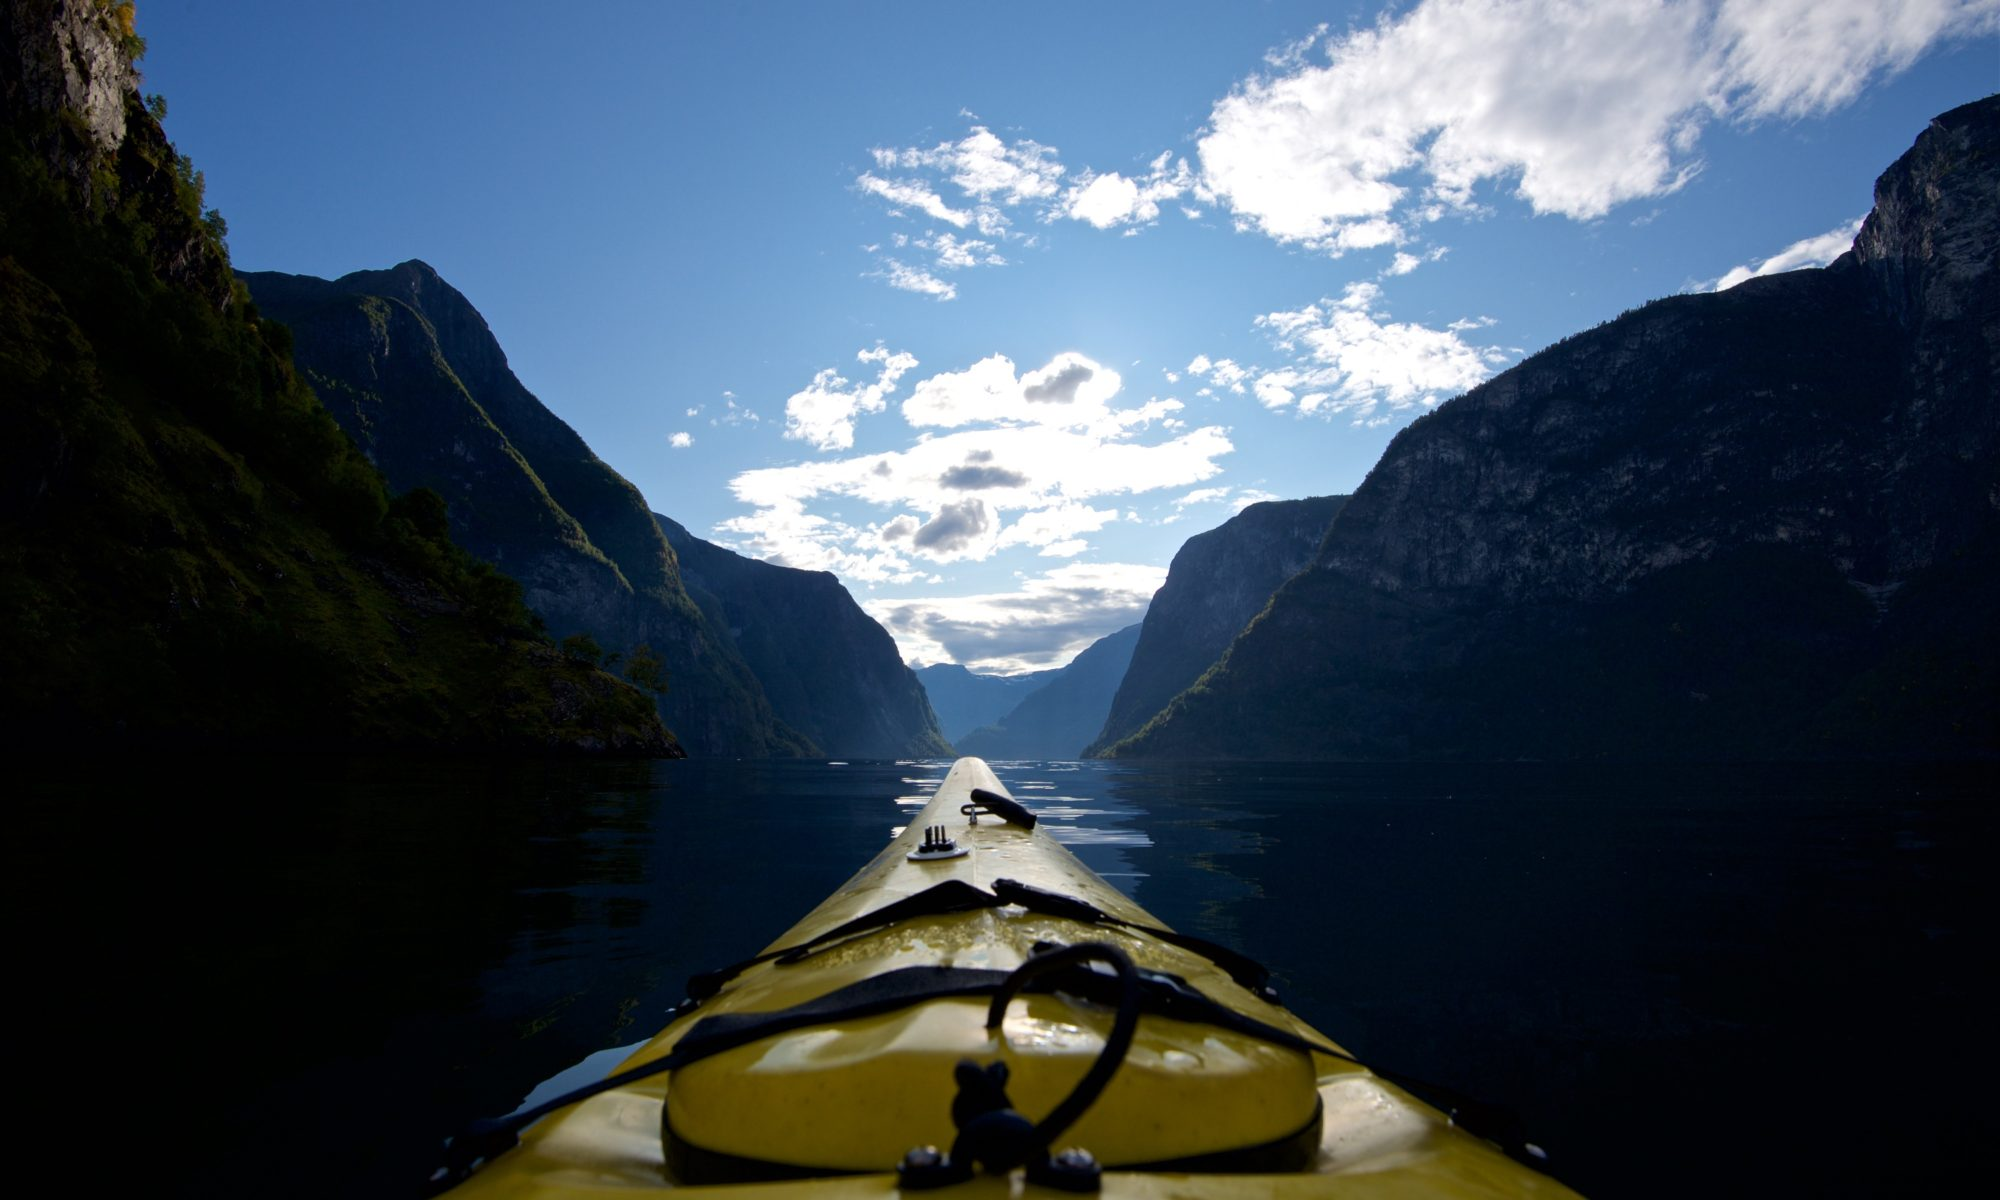 Kayaking on the Aurlandsfjord, view towards the Nærøyfjord